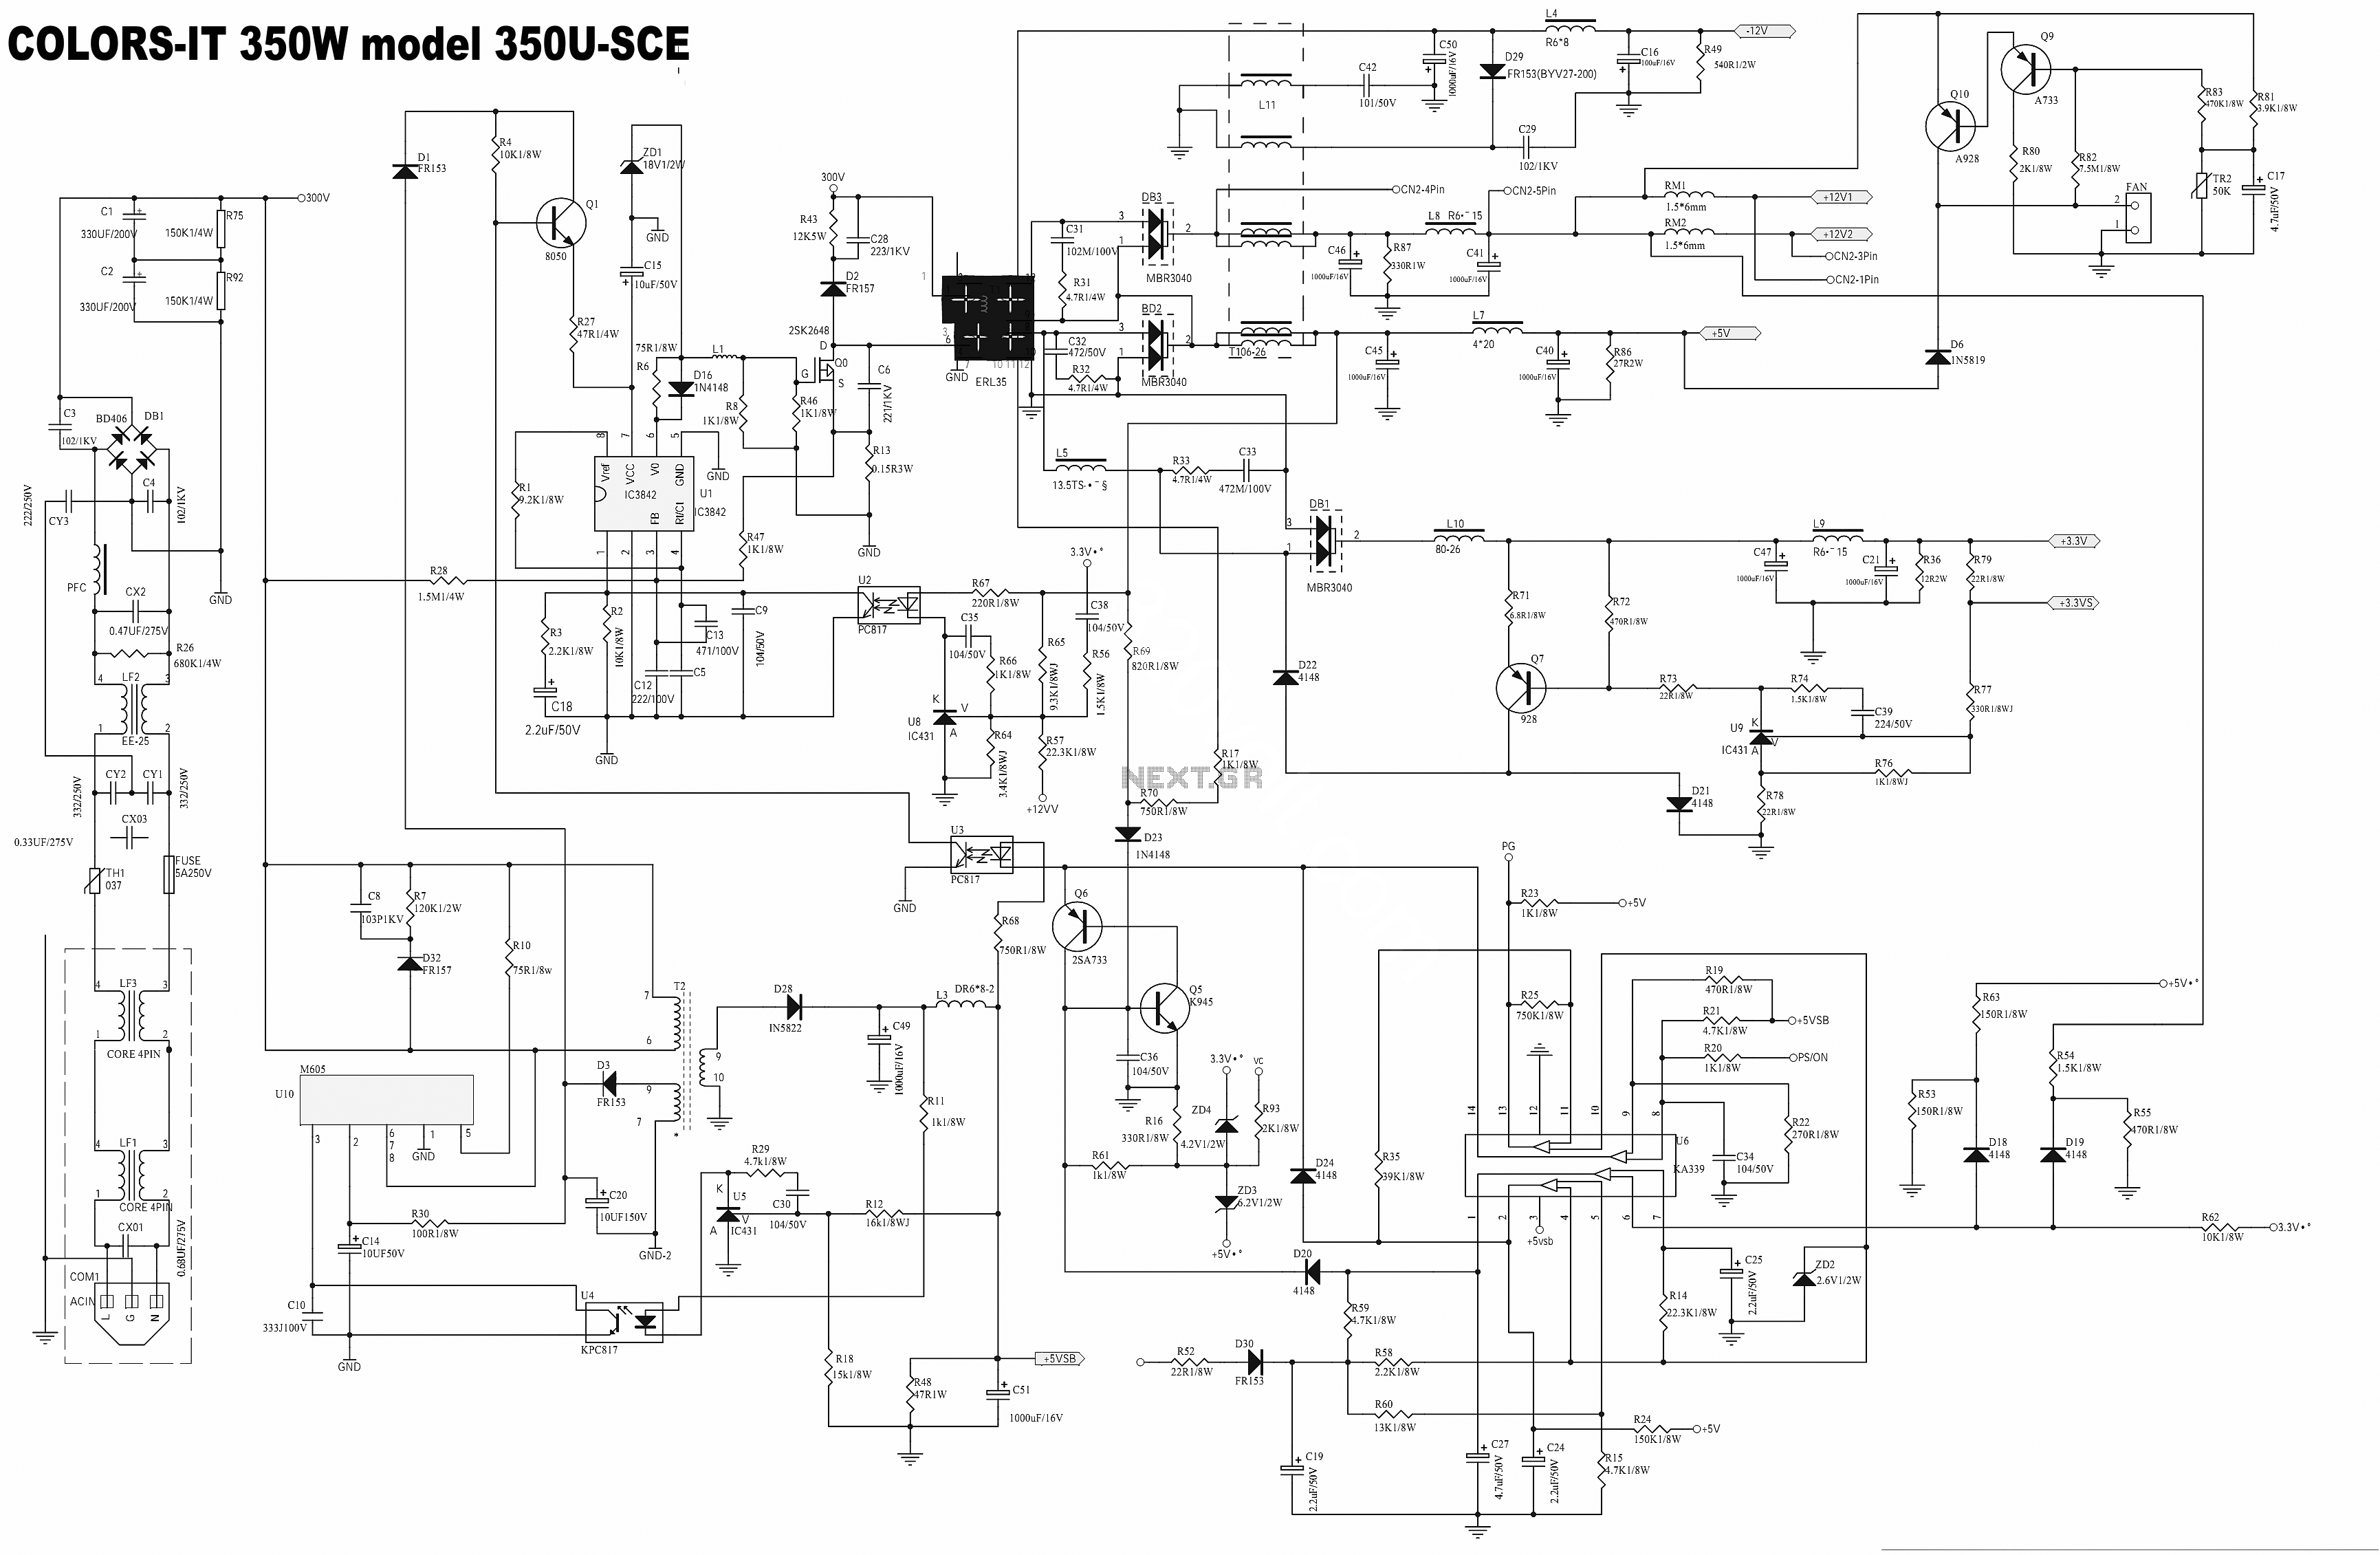 uc3842 m605 ka339 350usce smps atx circuit diagram circuit diagram uc3842b pdf circuit diagram with labels \u2022 45 63 74 91  at alyssarenee.co